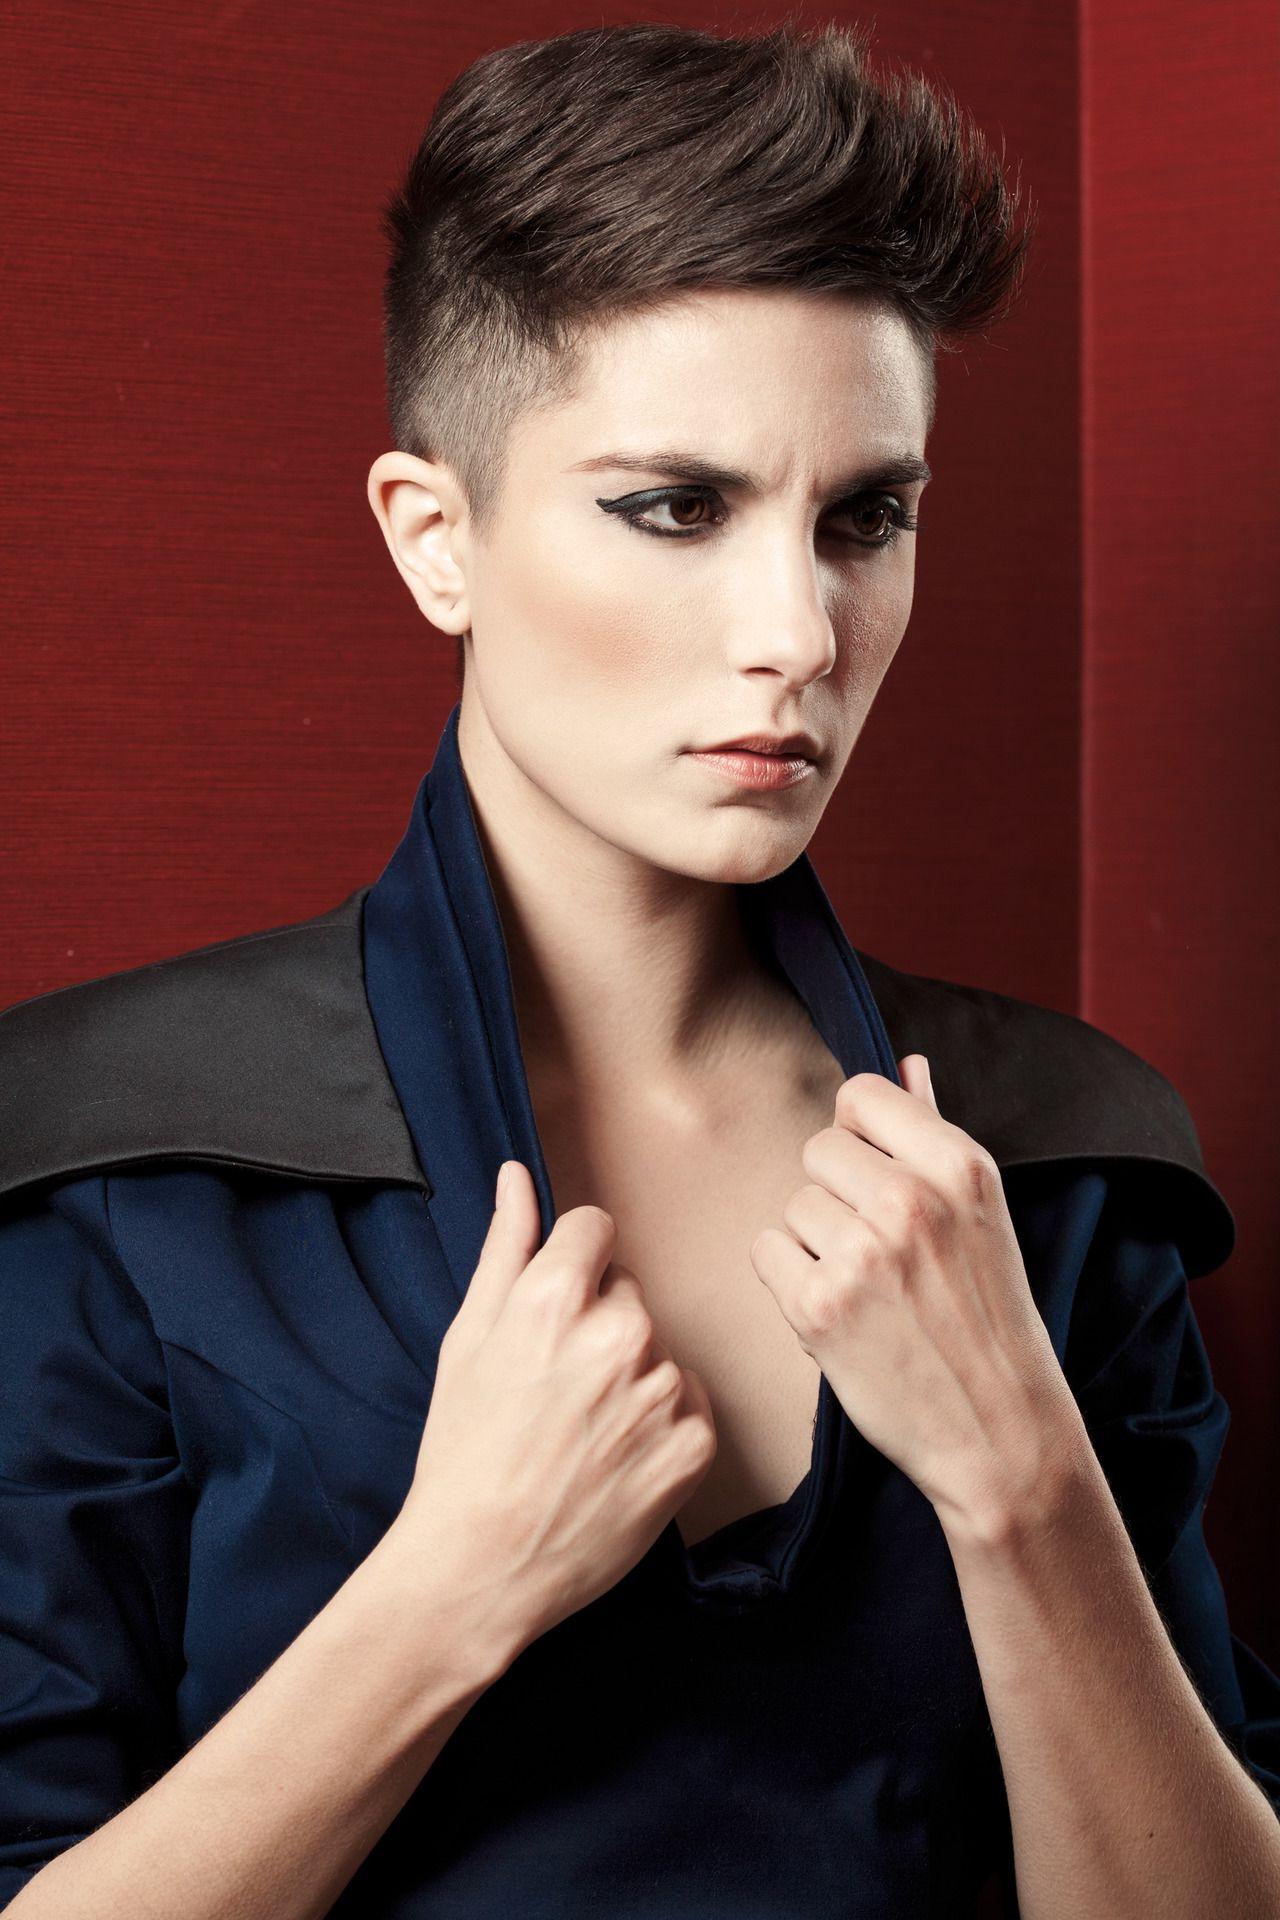 Shaved Sides Pixie | Hairstyles That I Like | Pinterest | Hair, Hair With Regard To Short Haircuts With Shaved Side (View 16 of 25)